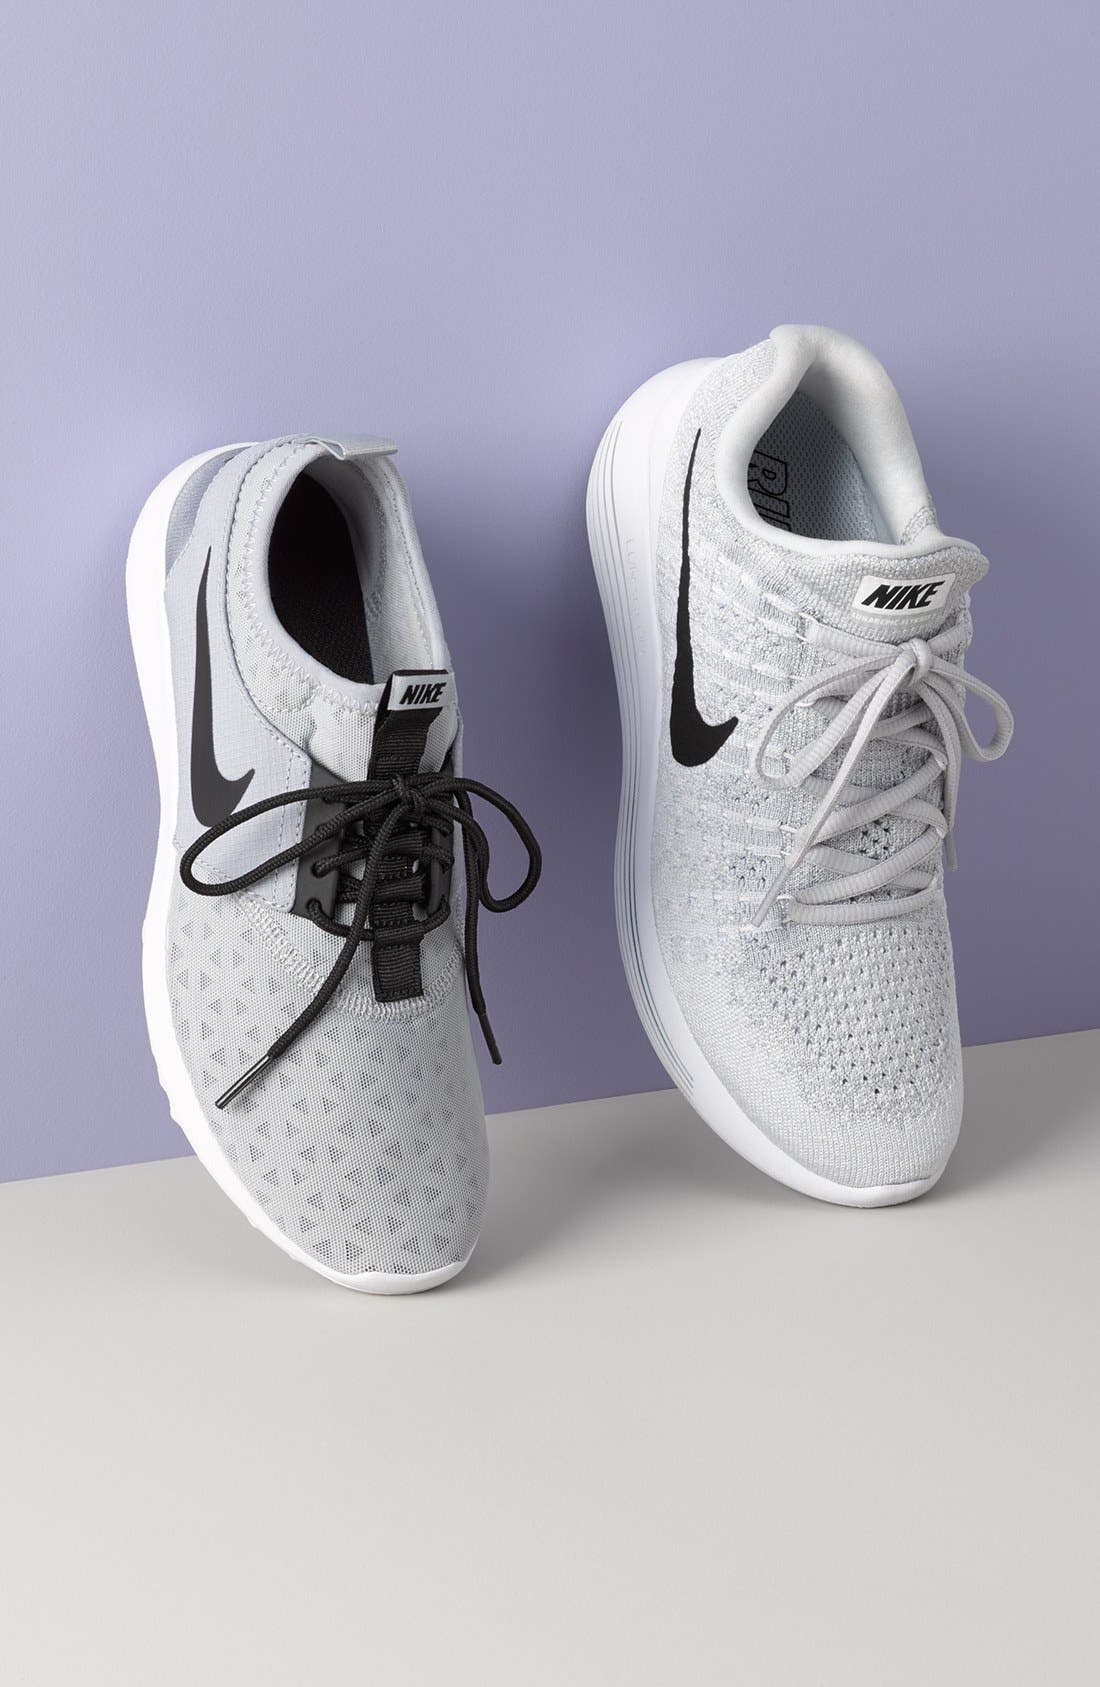 LunarEpic Low Flyknit 2 Running Shoe,                             Main thumbnail 1, color,                             014